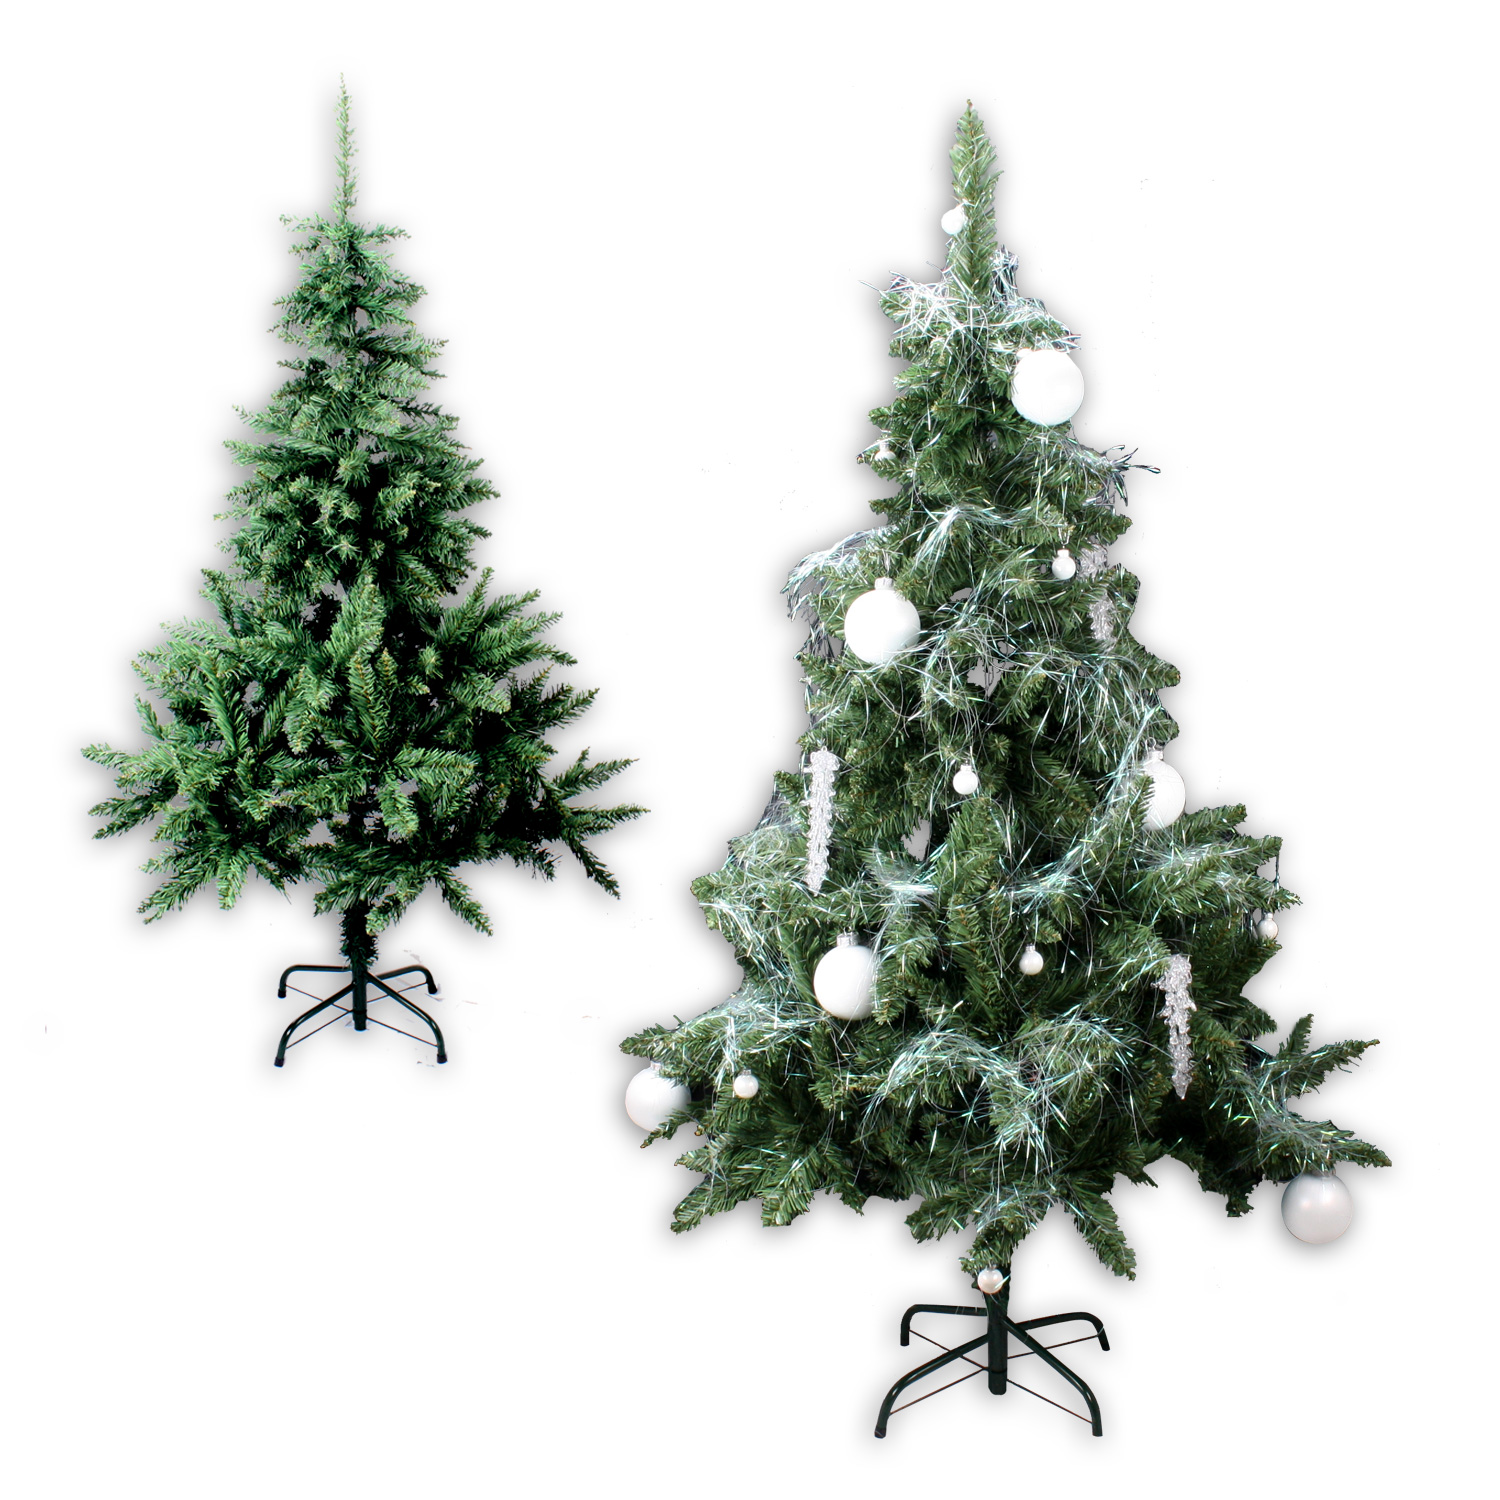 k nstlicher weihnachtsbaum 90 210 cm christbaum 100 960 zweige tannenbaum tirol. Black Bedroom Furniture Sets. Home Design Ideas